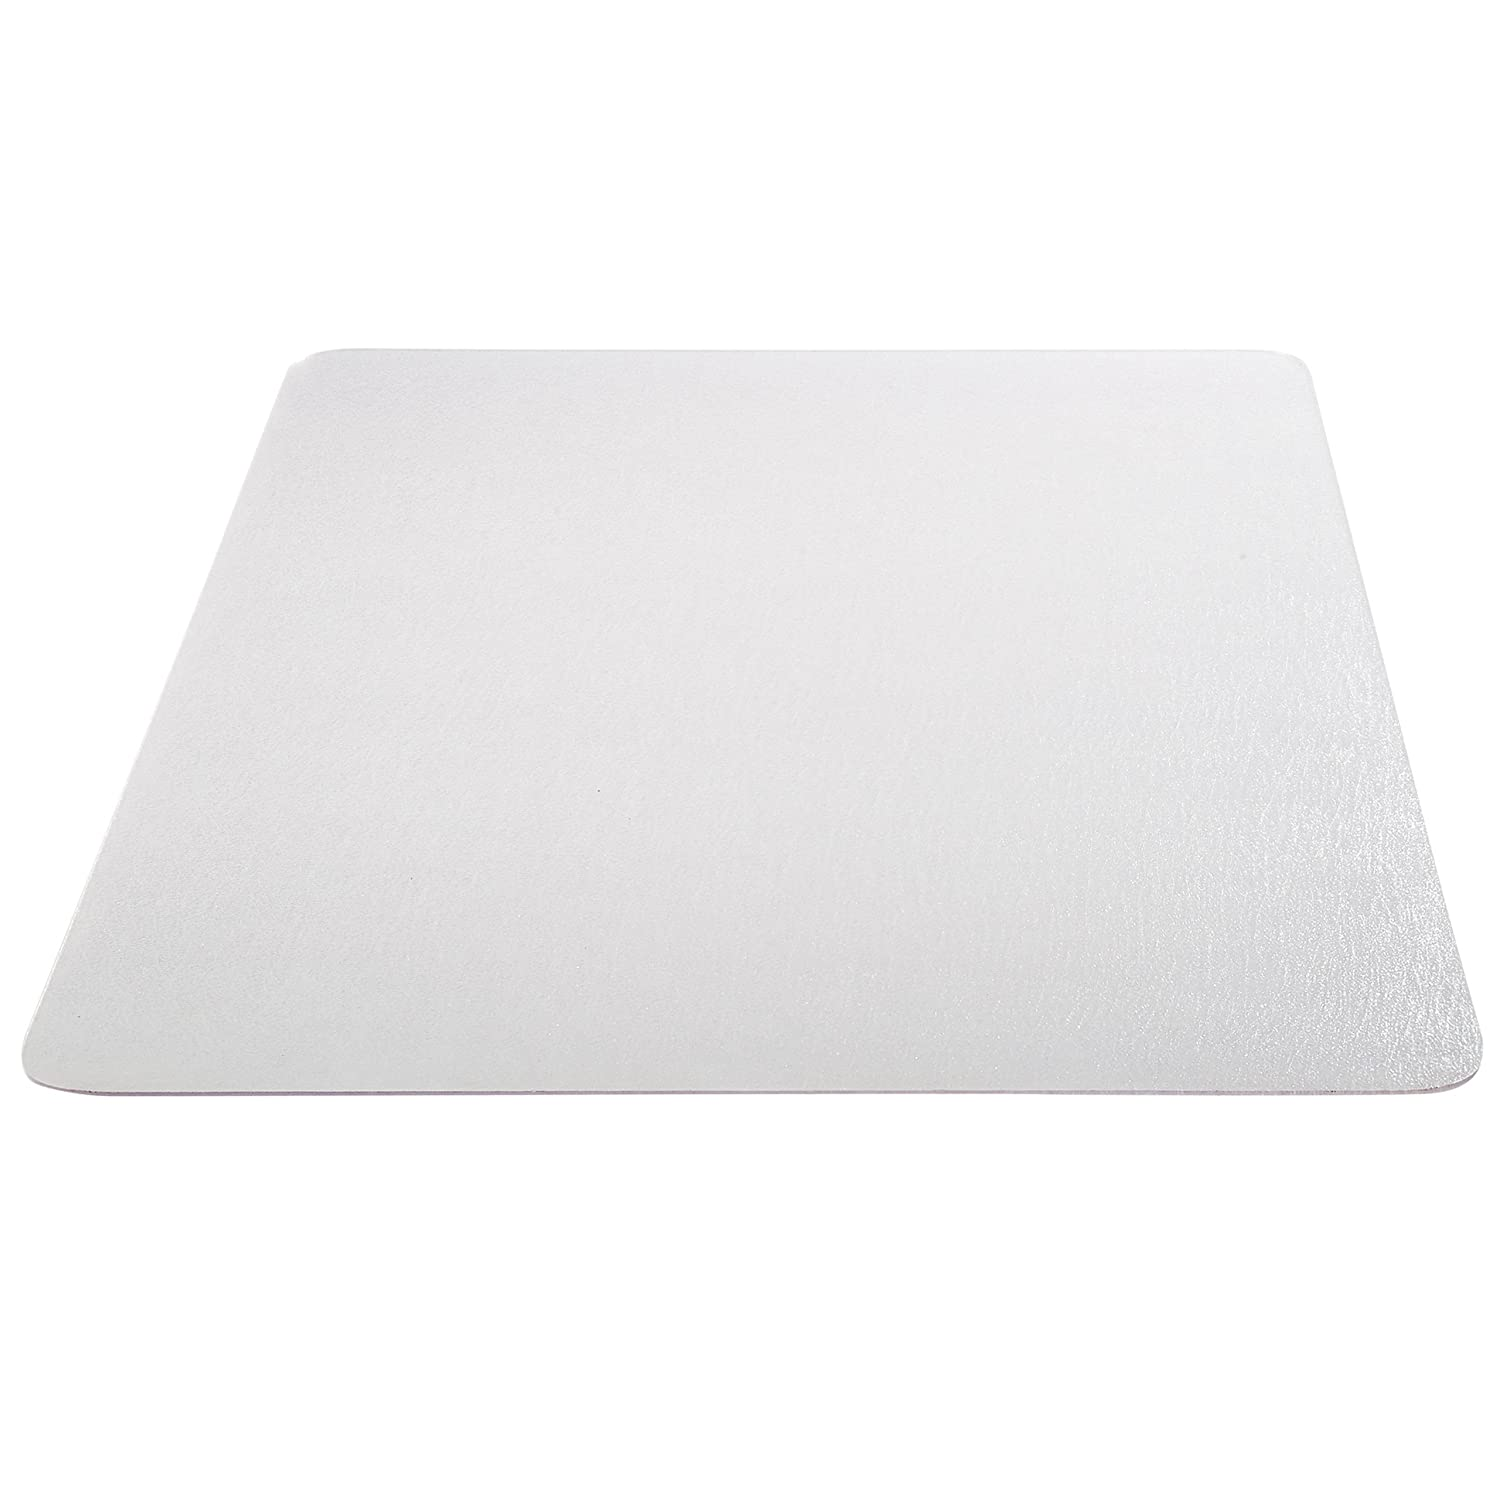 Chair Mats Amazon